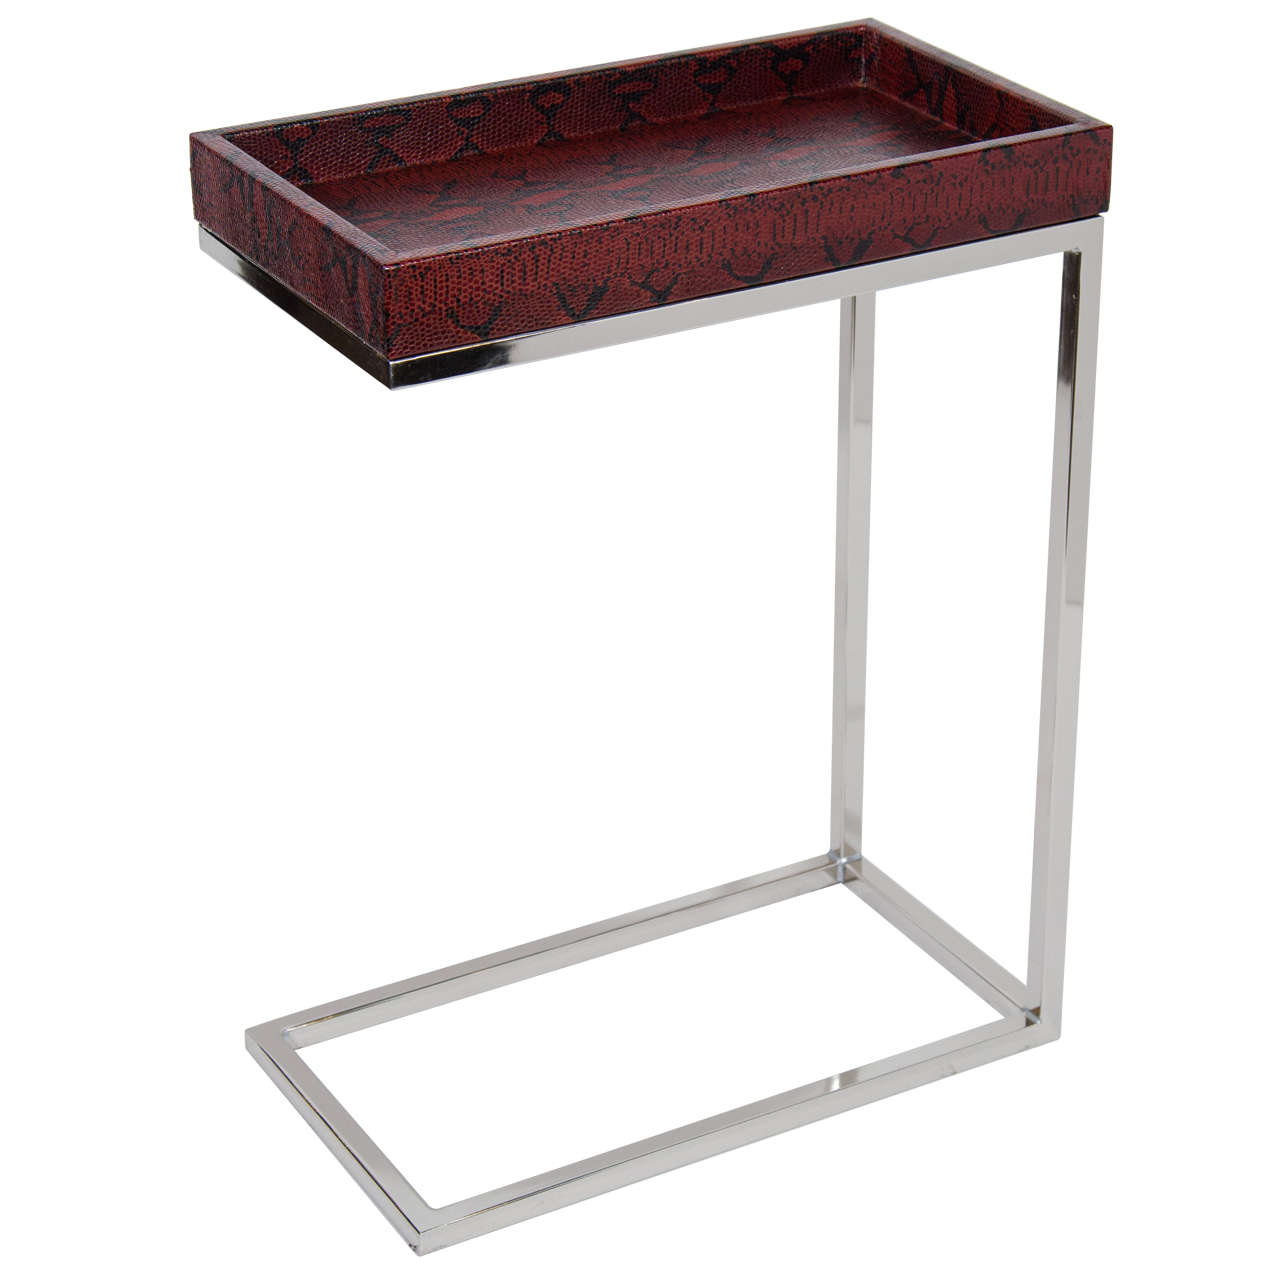 Karl springer style narrow side table in python embossed for Narrow side table